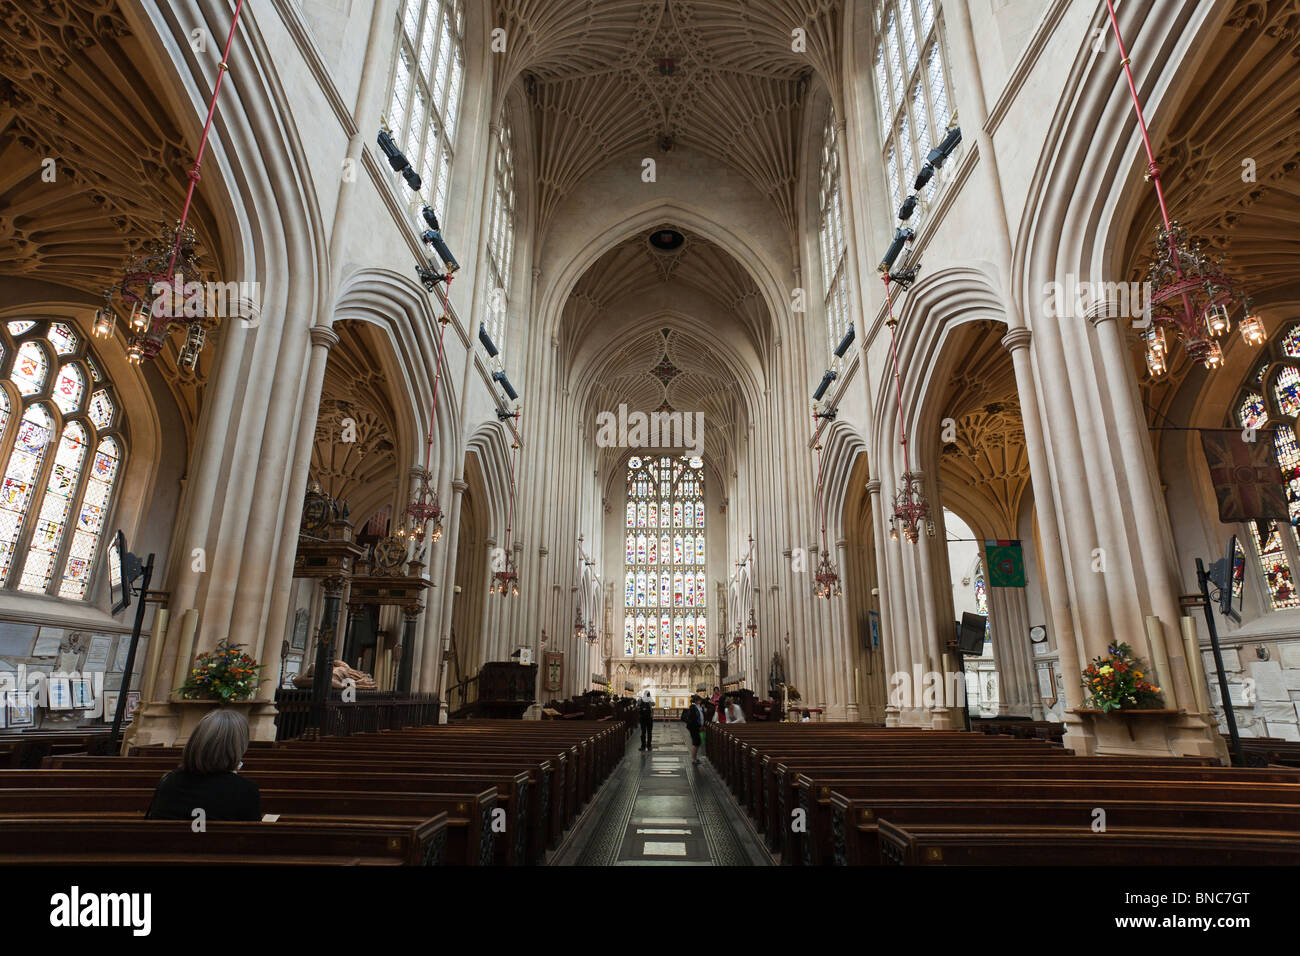 The central aisle between the pews and altar at Bath Abbey. The fine fan vaulting is the most distinctive feature. - Stock Image